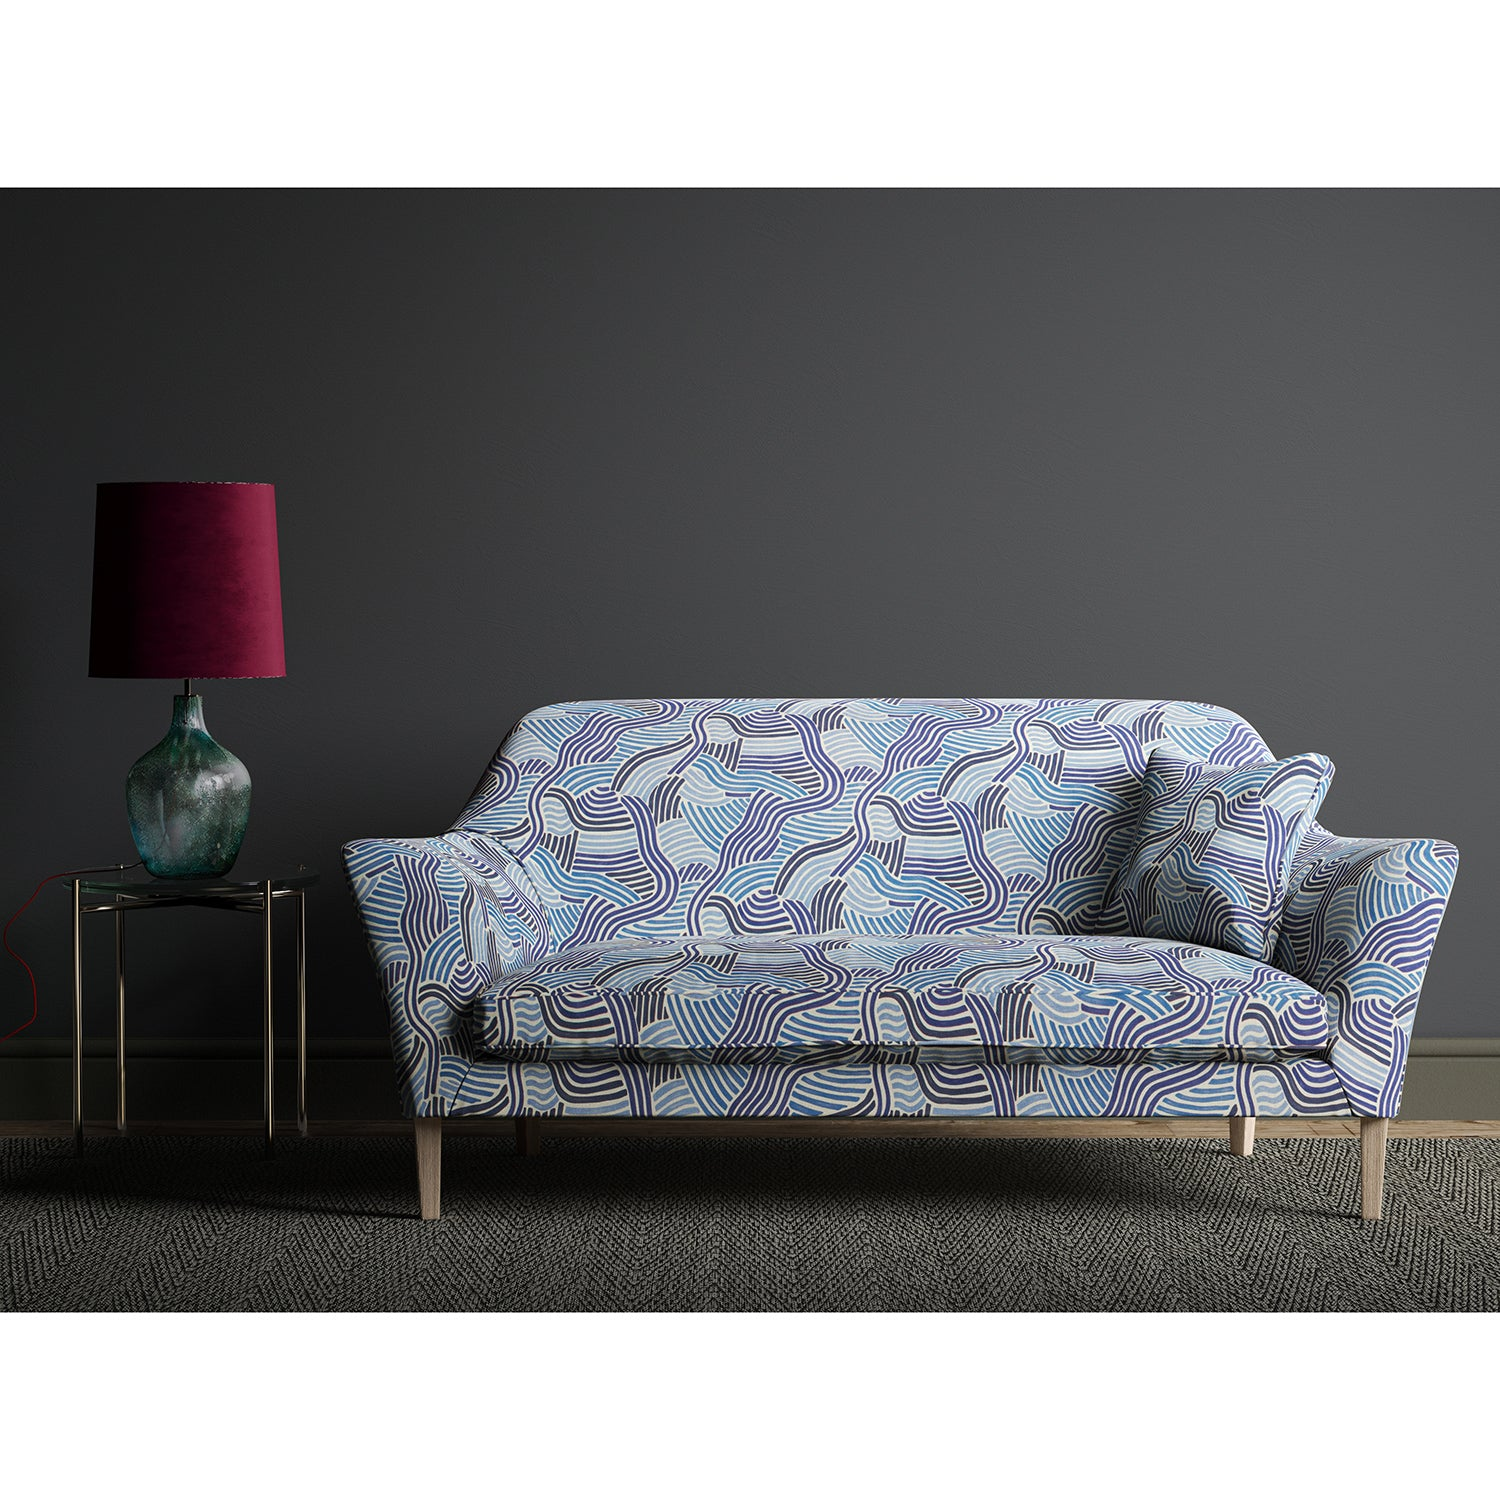 Sofa upholstered in a modern blue wavy print fabric